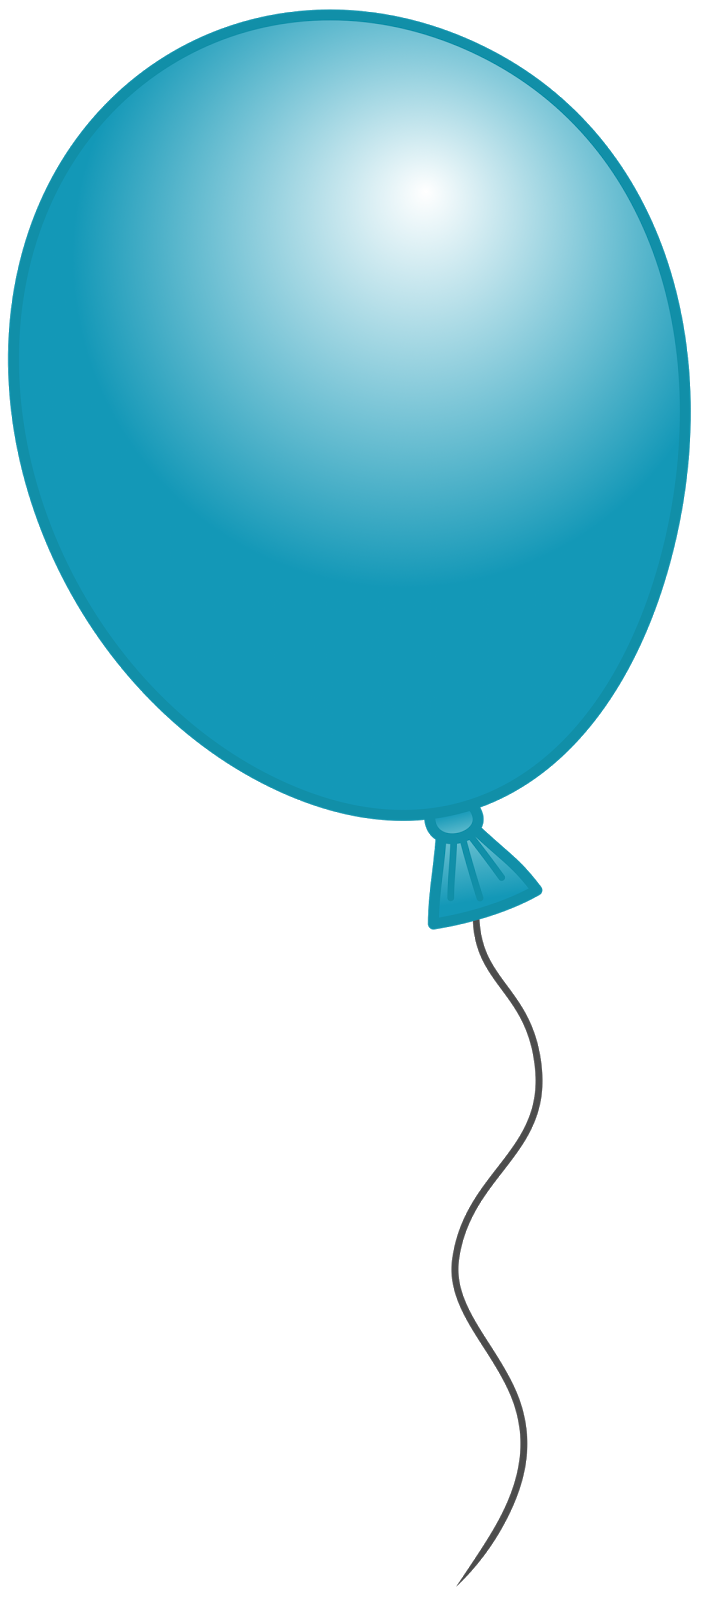 705x1600 Free Birthday Balloon Clip Art Clipart Images 8